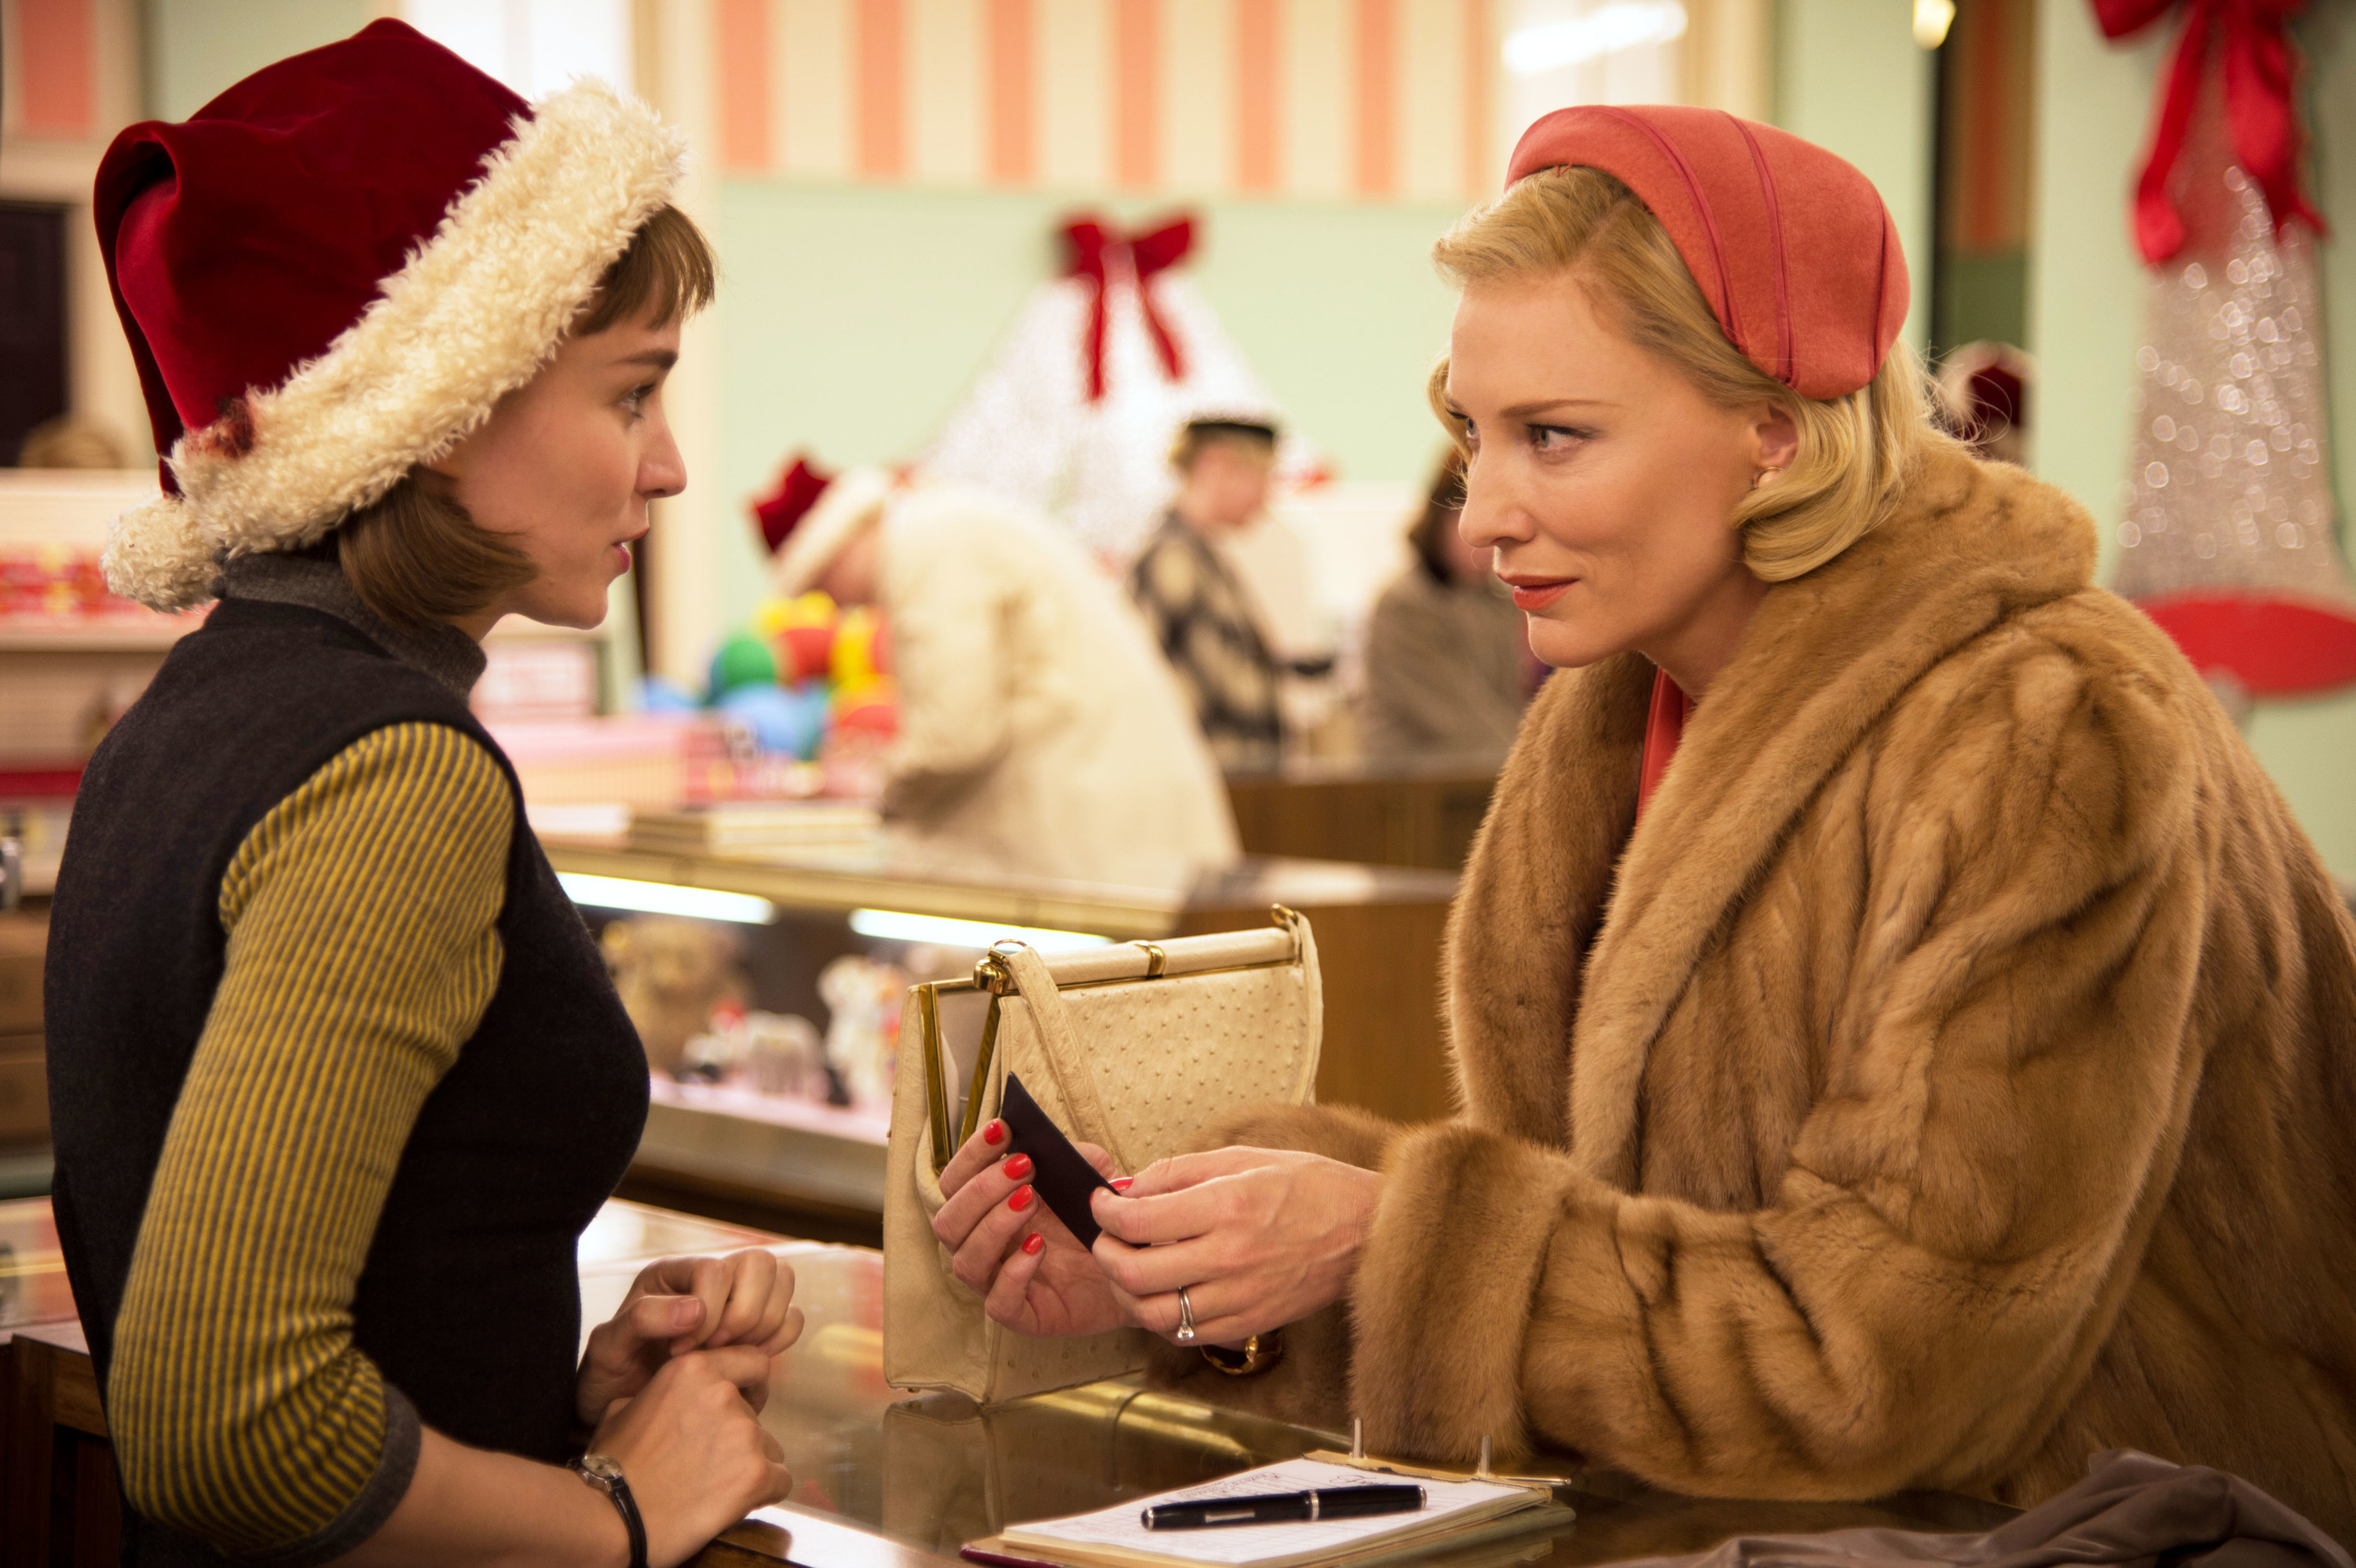 Rooney Mara and Cate Blanchett talking to one another in a department store in a scene from Carol